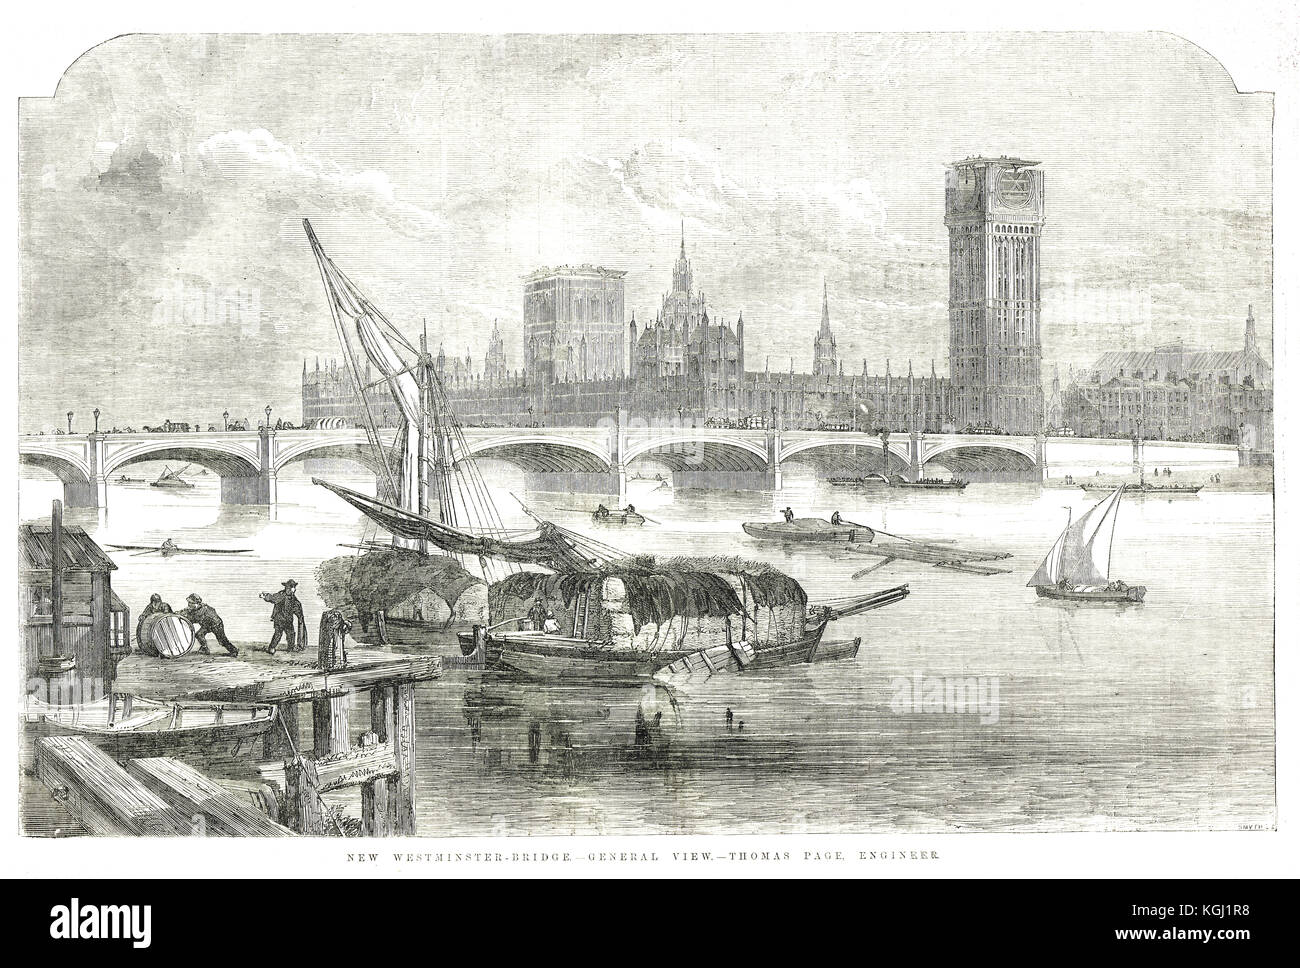 New Westminster Bridge & Palace showing Big Ben clock tower in construction 1855 - Stock Image